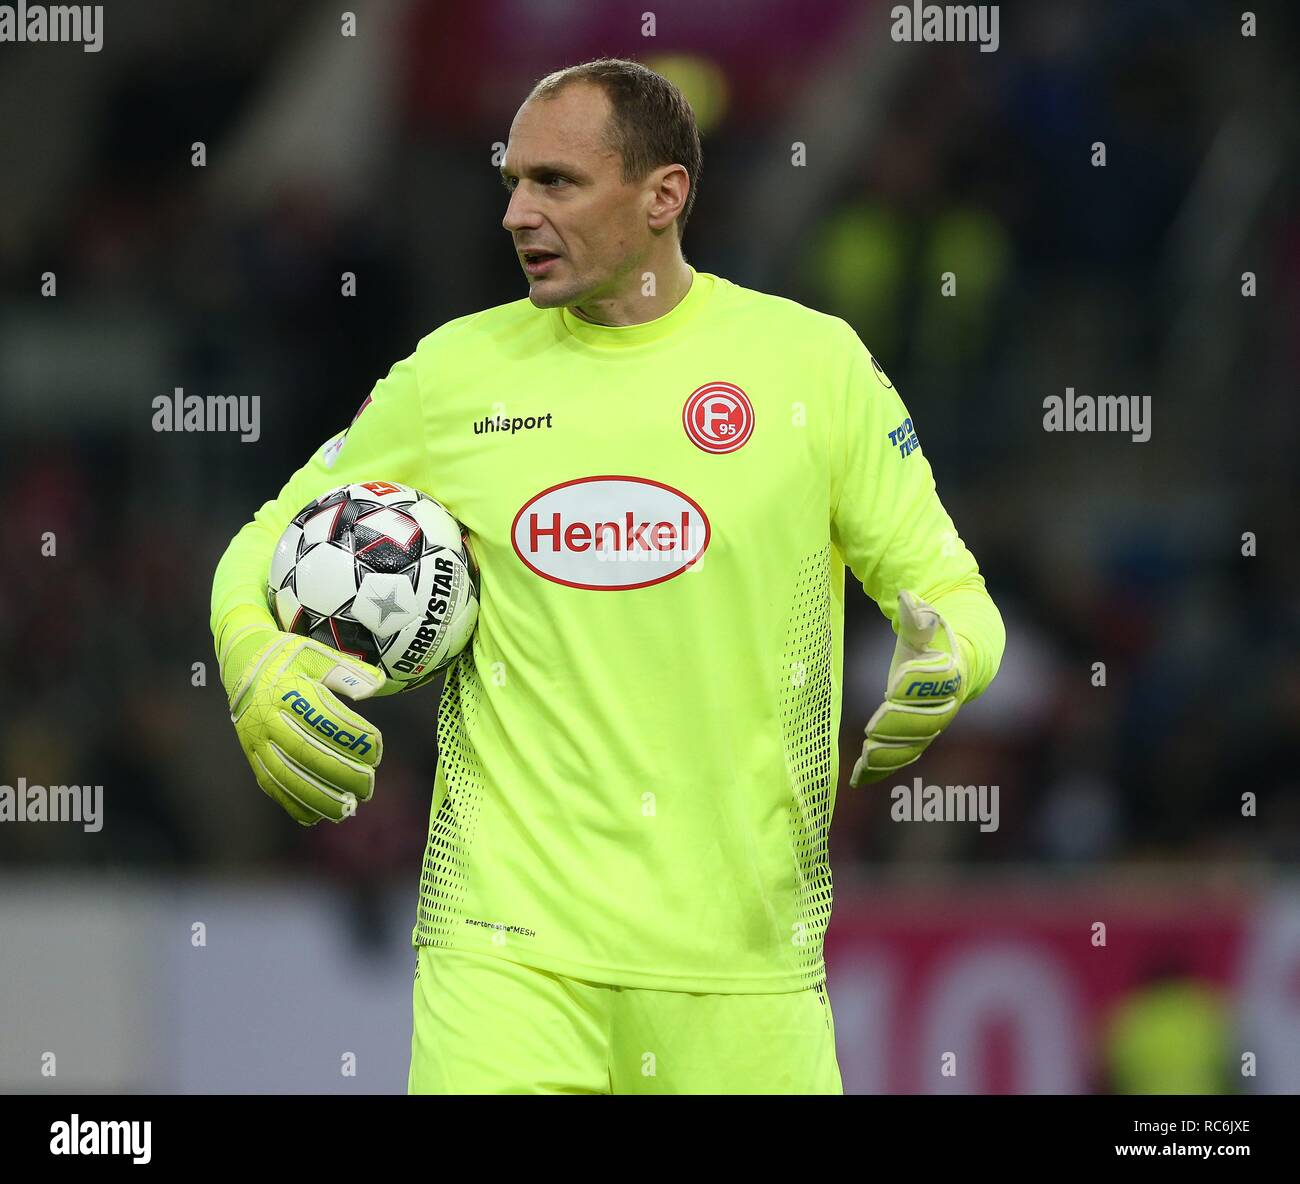 Fortuna Dusseldorf Goalkeeper High Resolution Stock Photography And Images Alamy